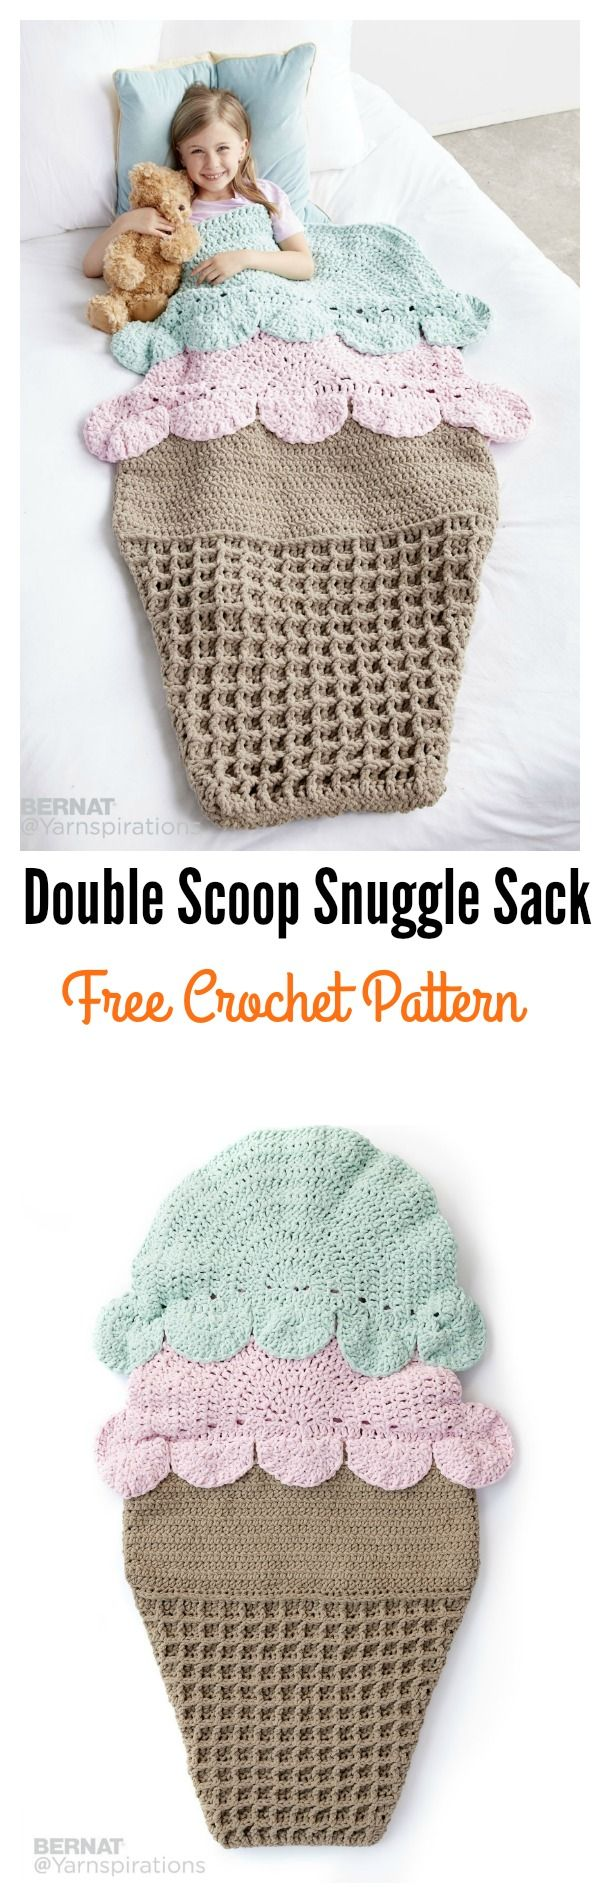 Crochet Double Scoop Snuggle Sack Free Pattern | Tejido, Manta y Cobija